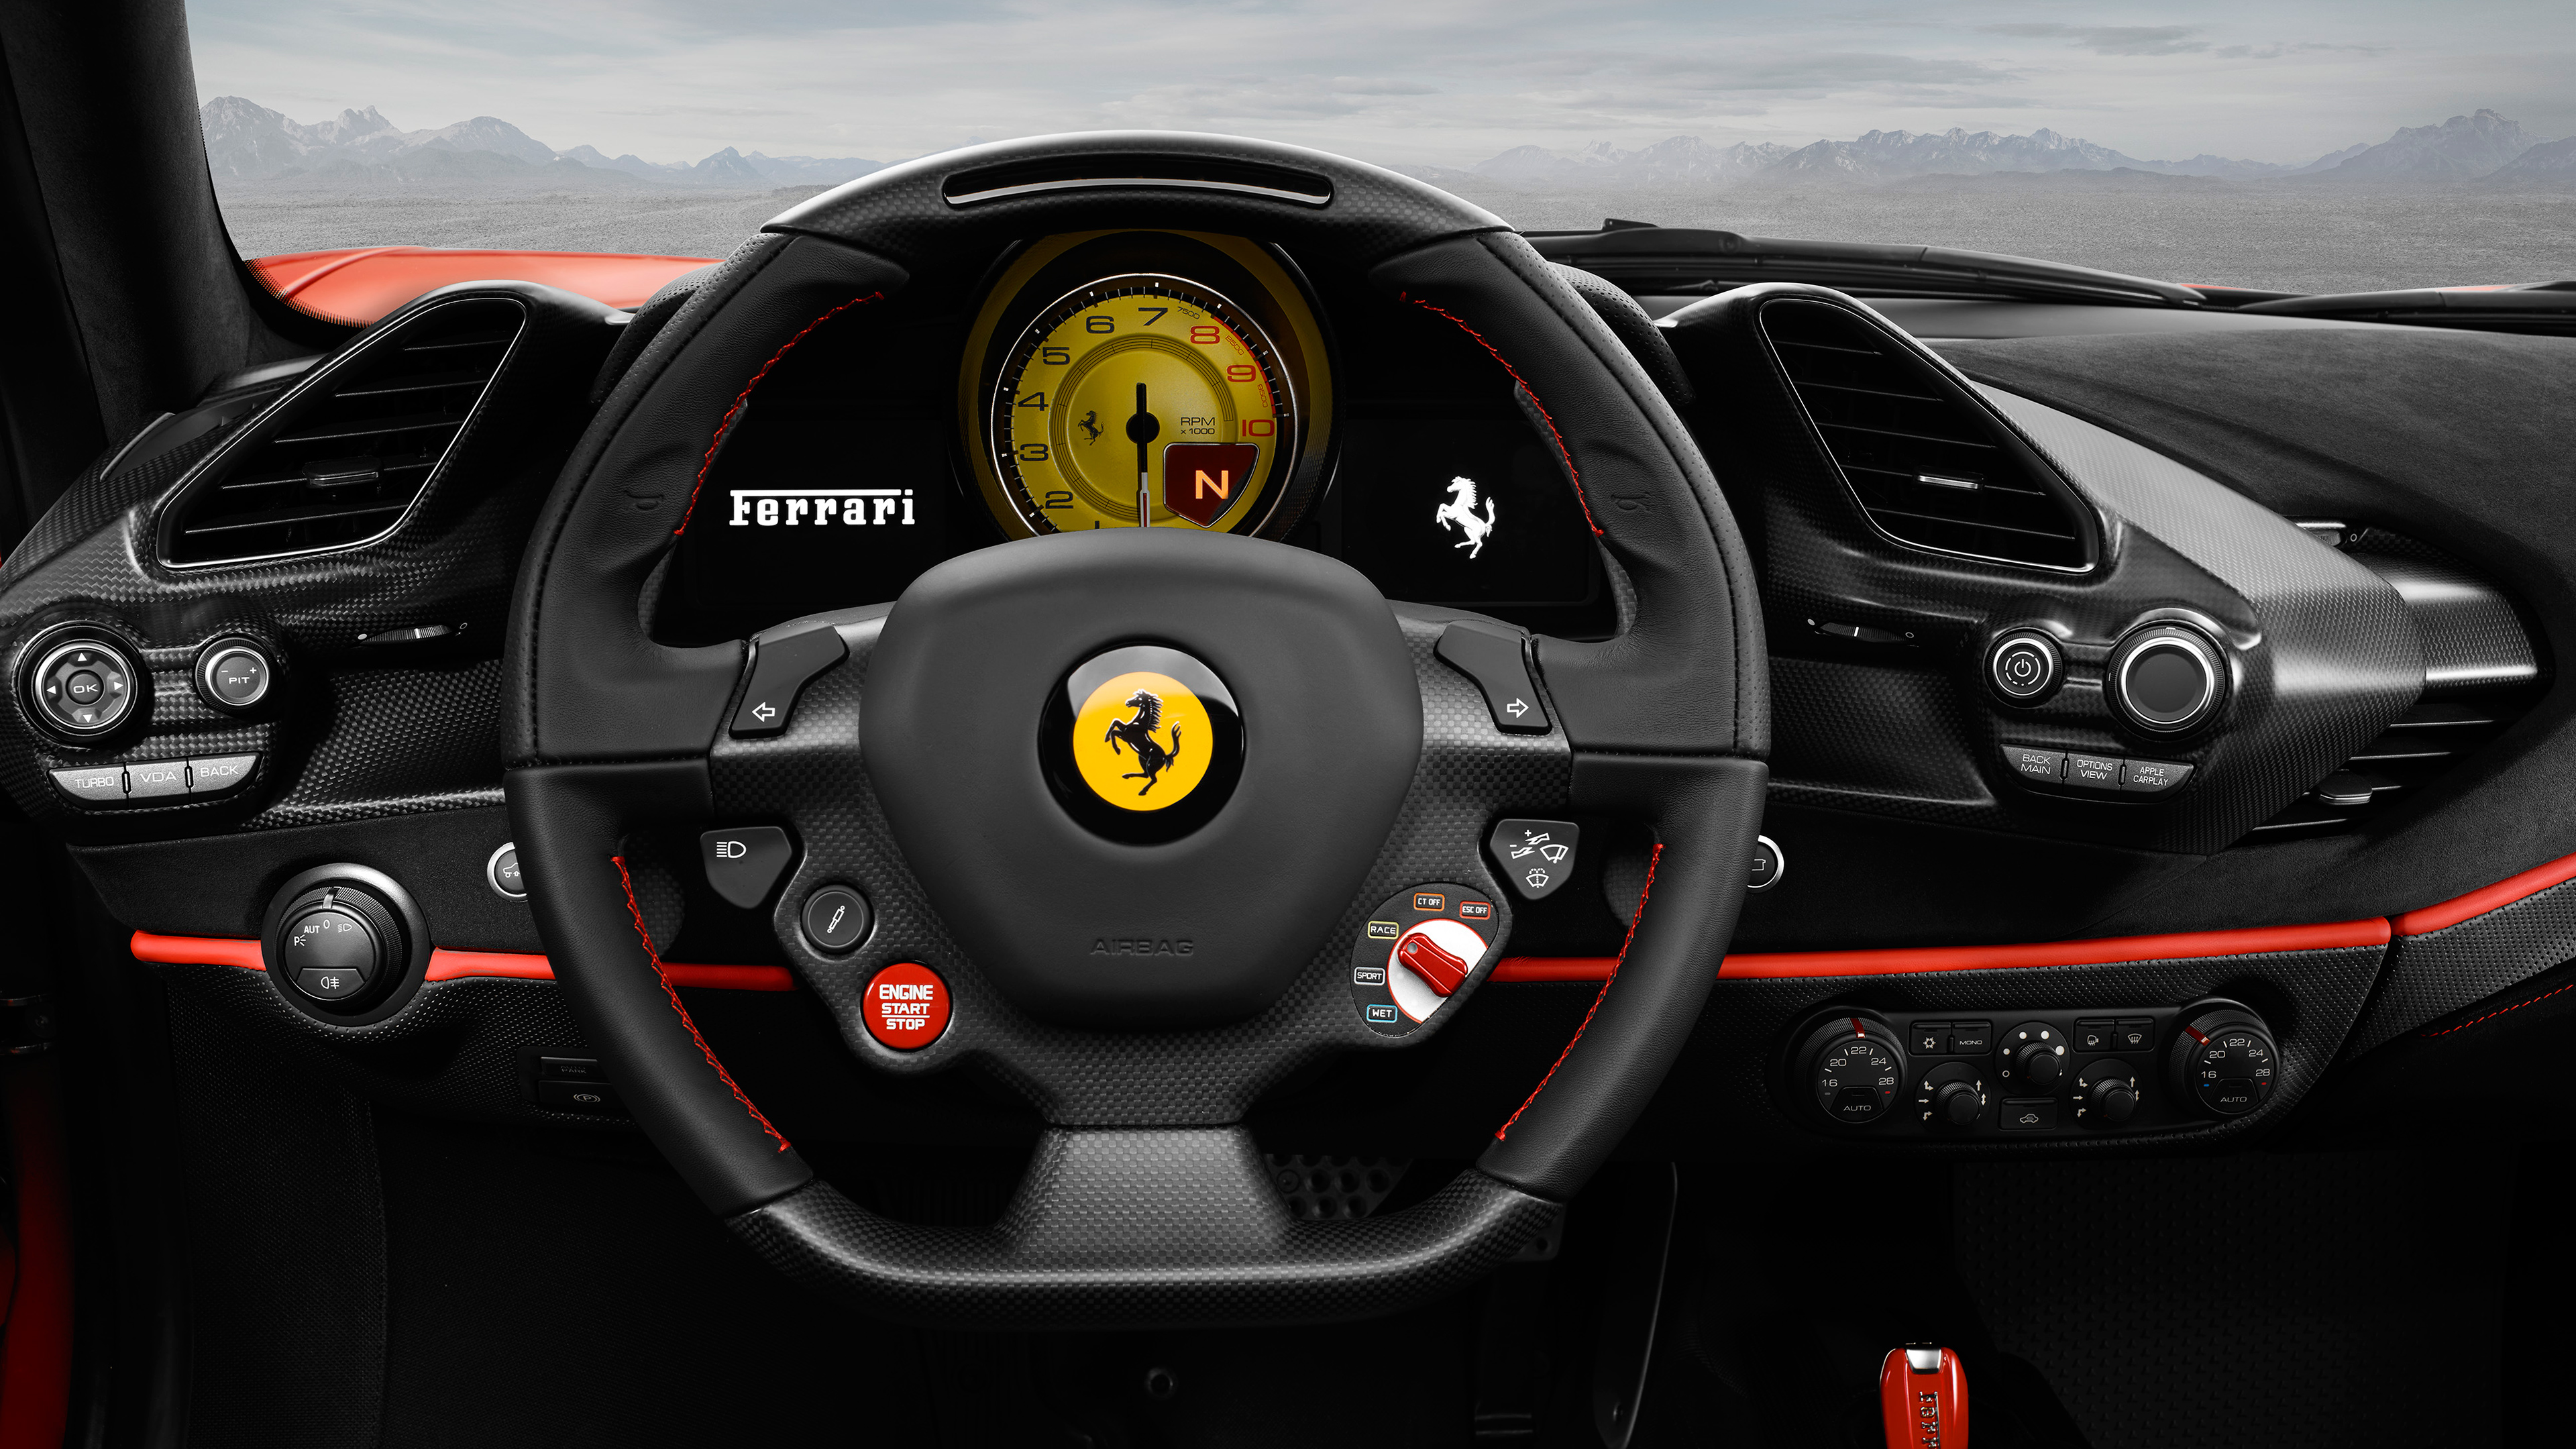 ferrari 488 pista 4k 2018 3 wallpaper hd car wallpapers id 9796. Black Bedroom Furniture Sets. Home Design Ideas